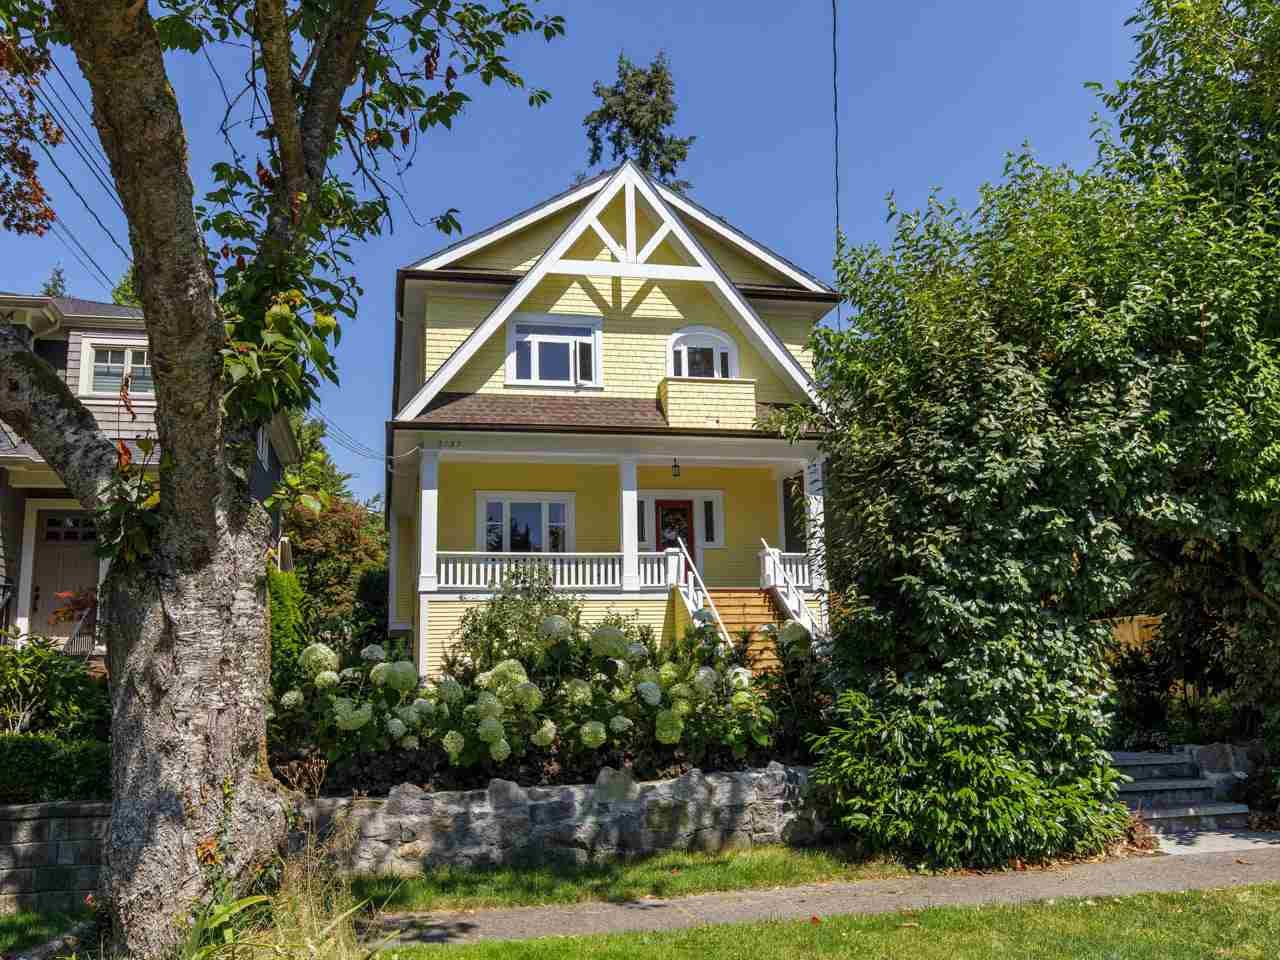 Lovely character home on a 37'ft lot